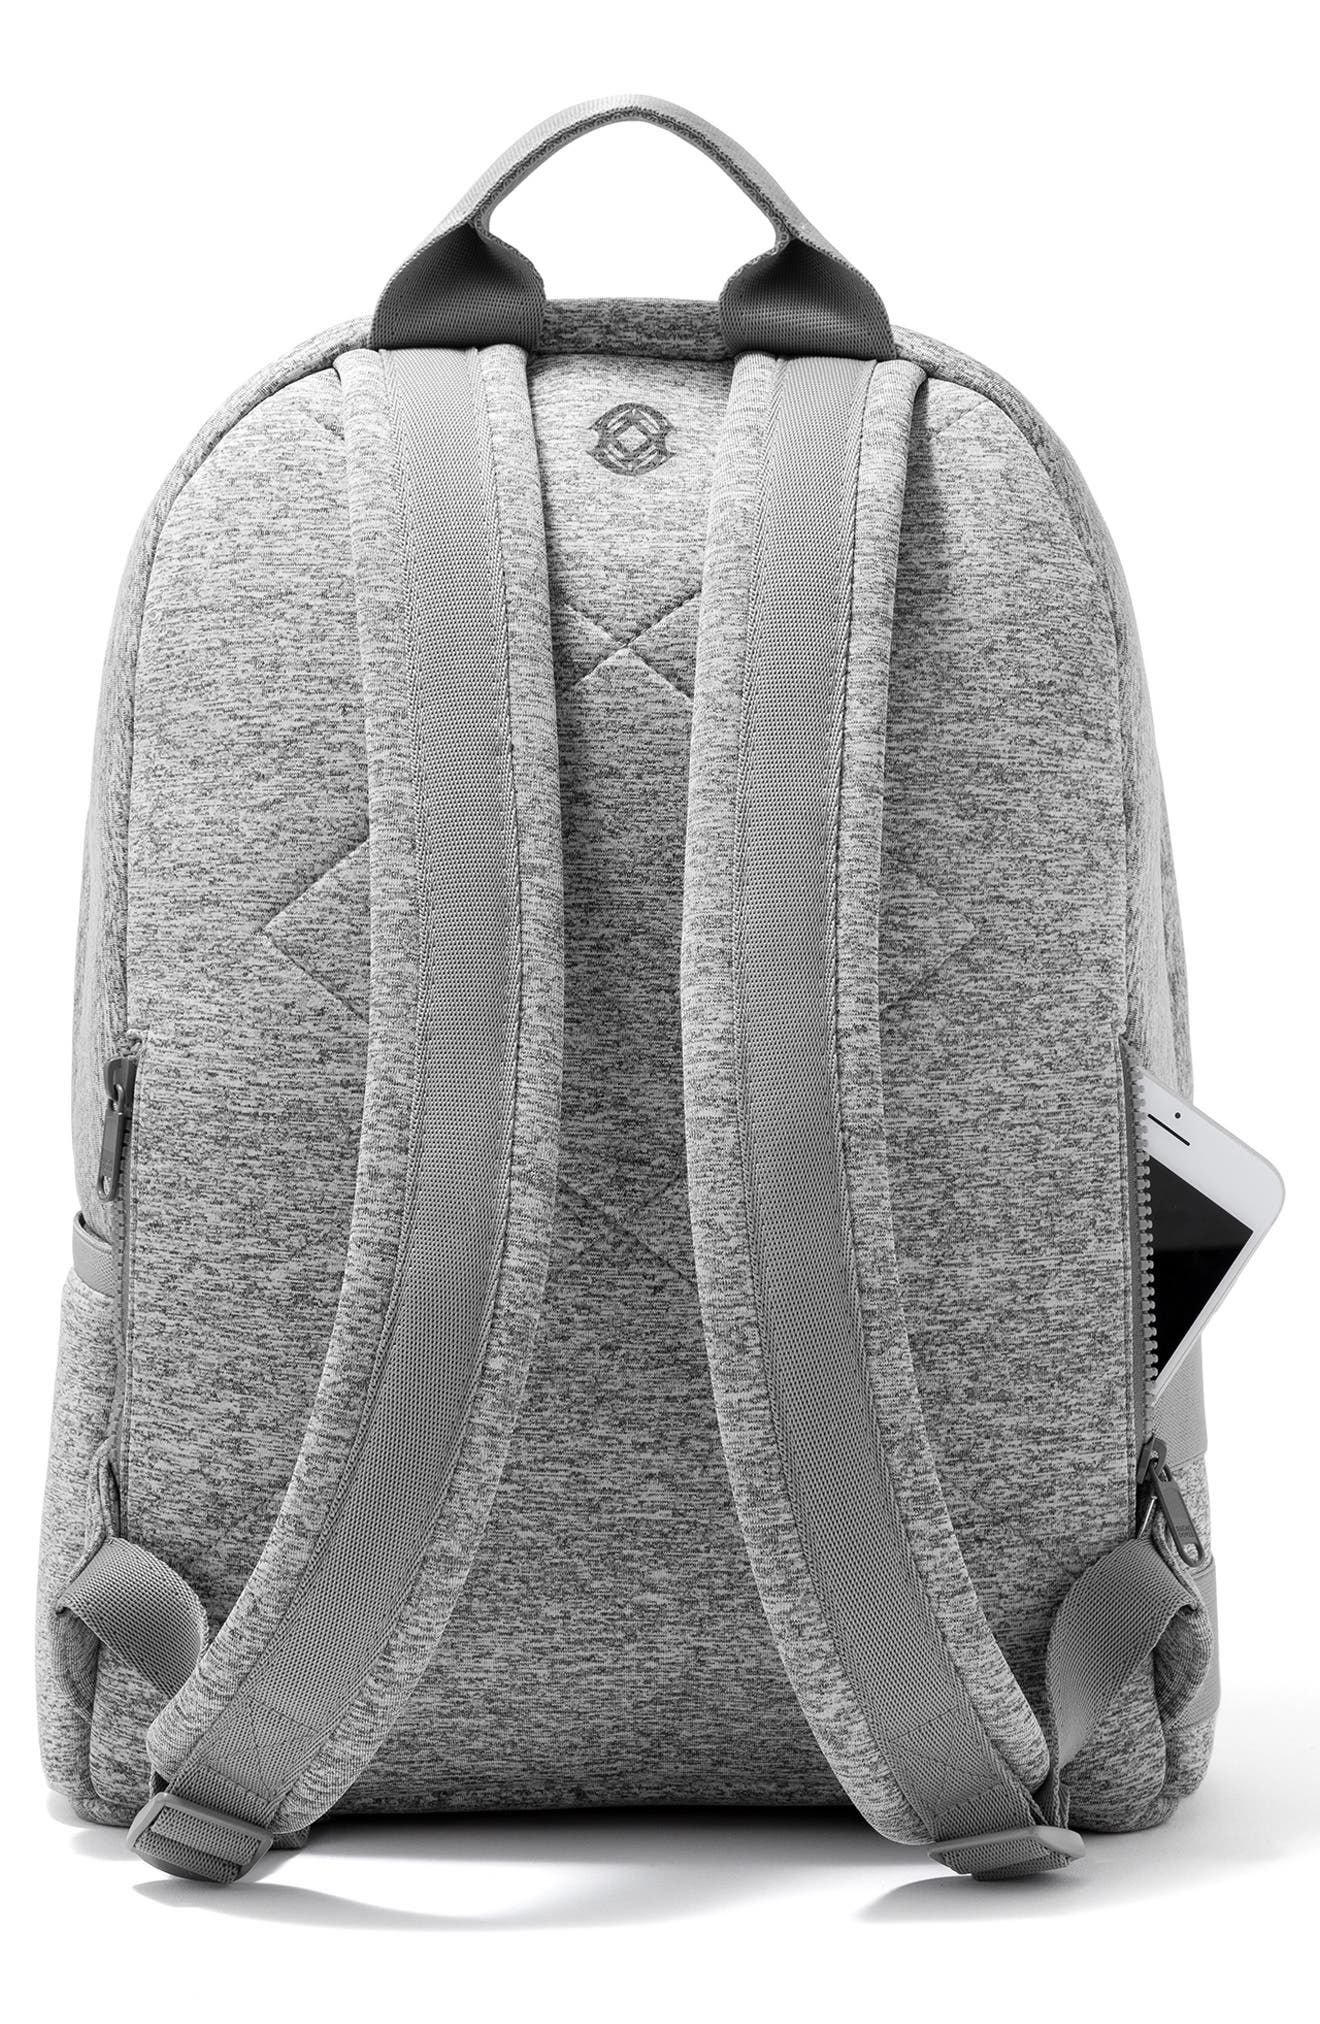 365 Dakota Neoprene Backpack,                             Alternate thumbnail 2, color,                             HEATHER GREY